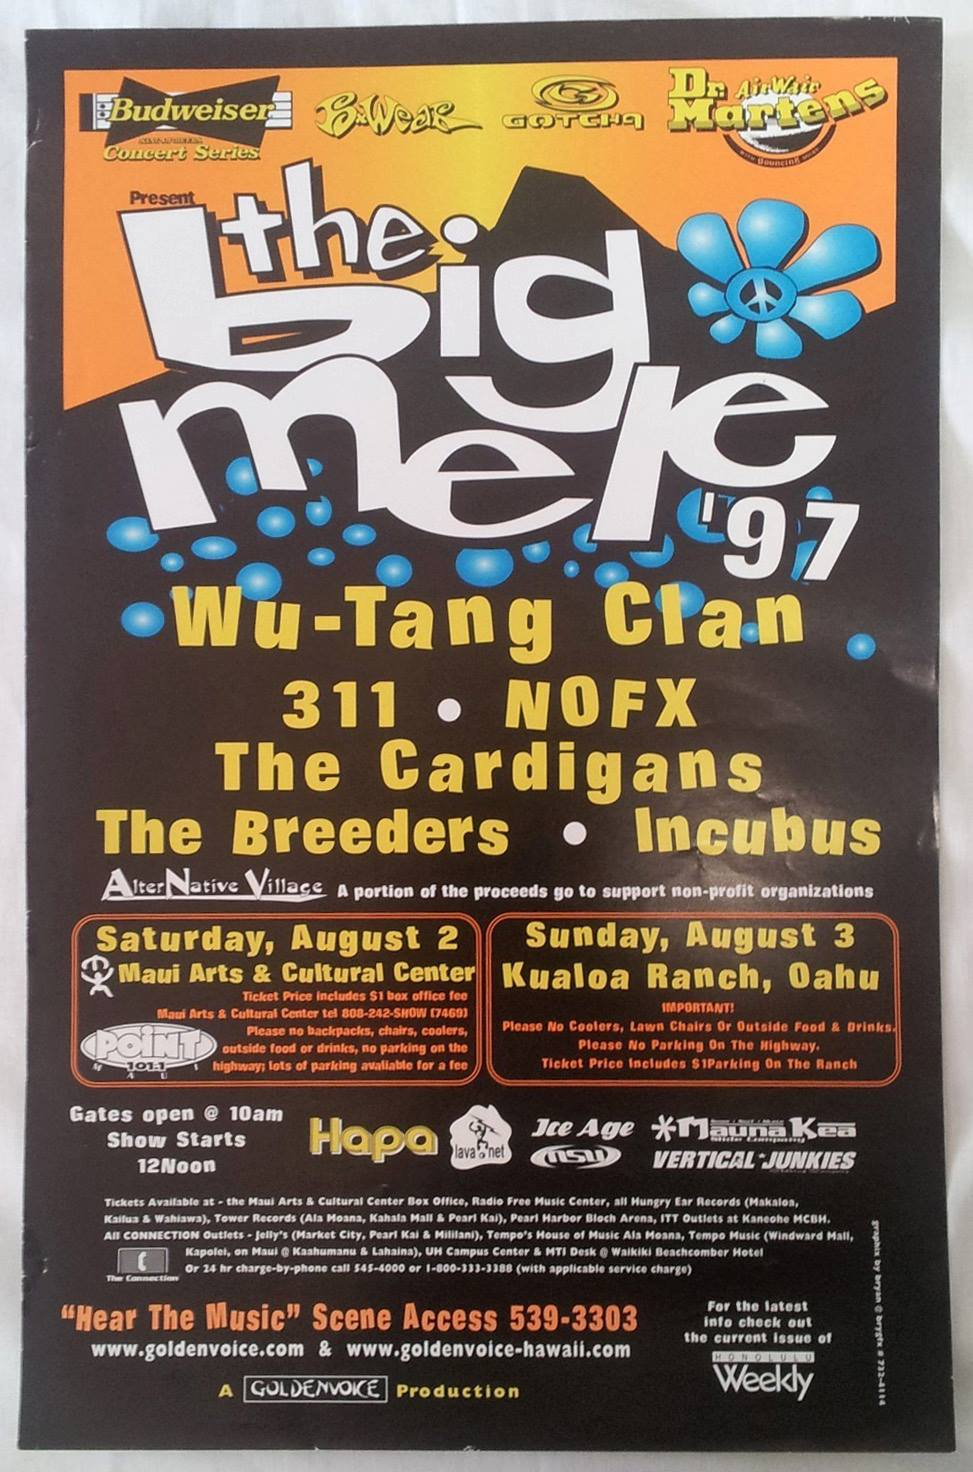 The Big Mele 1997 Concert Poster.